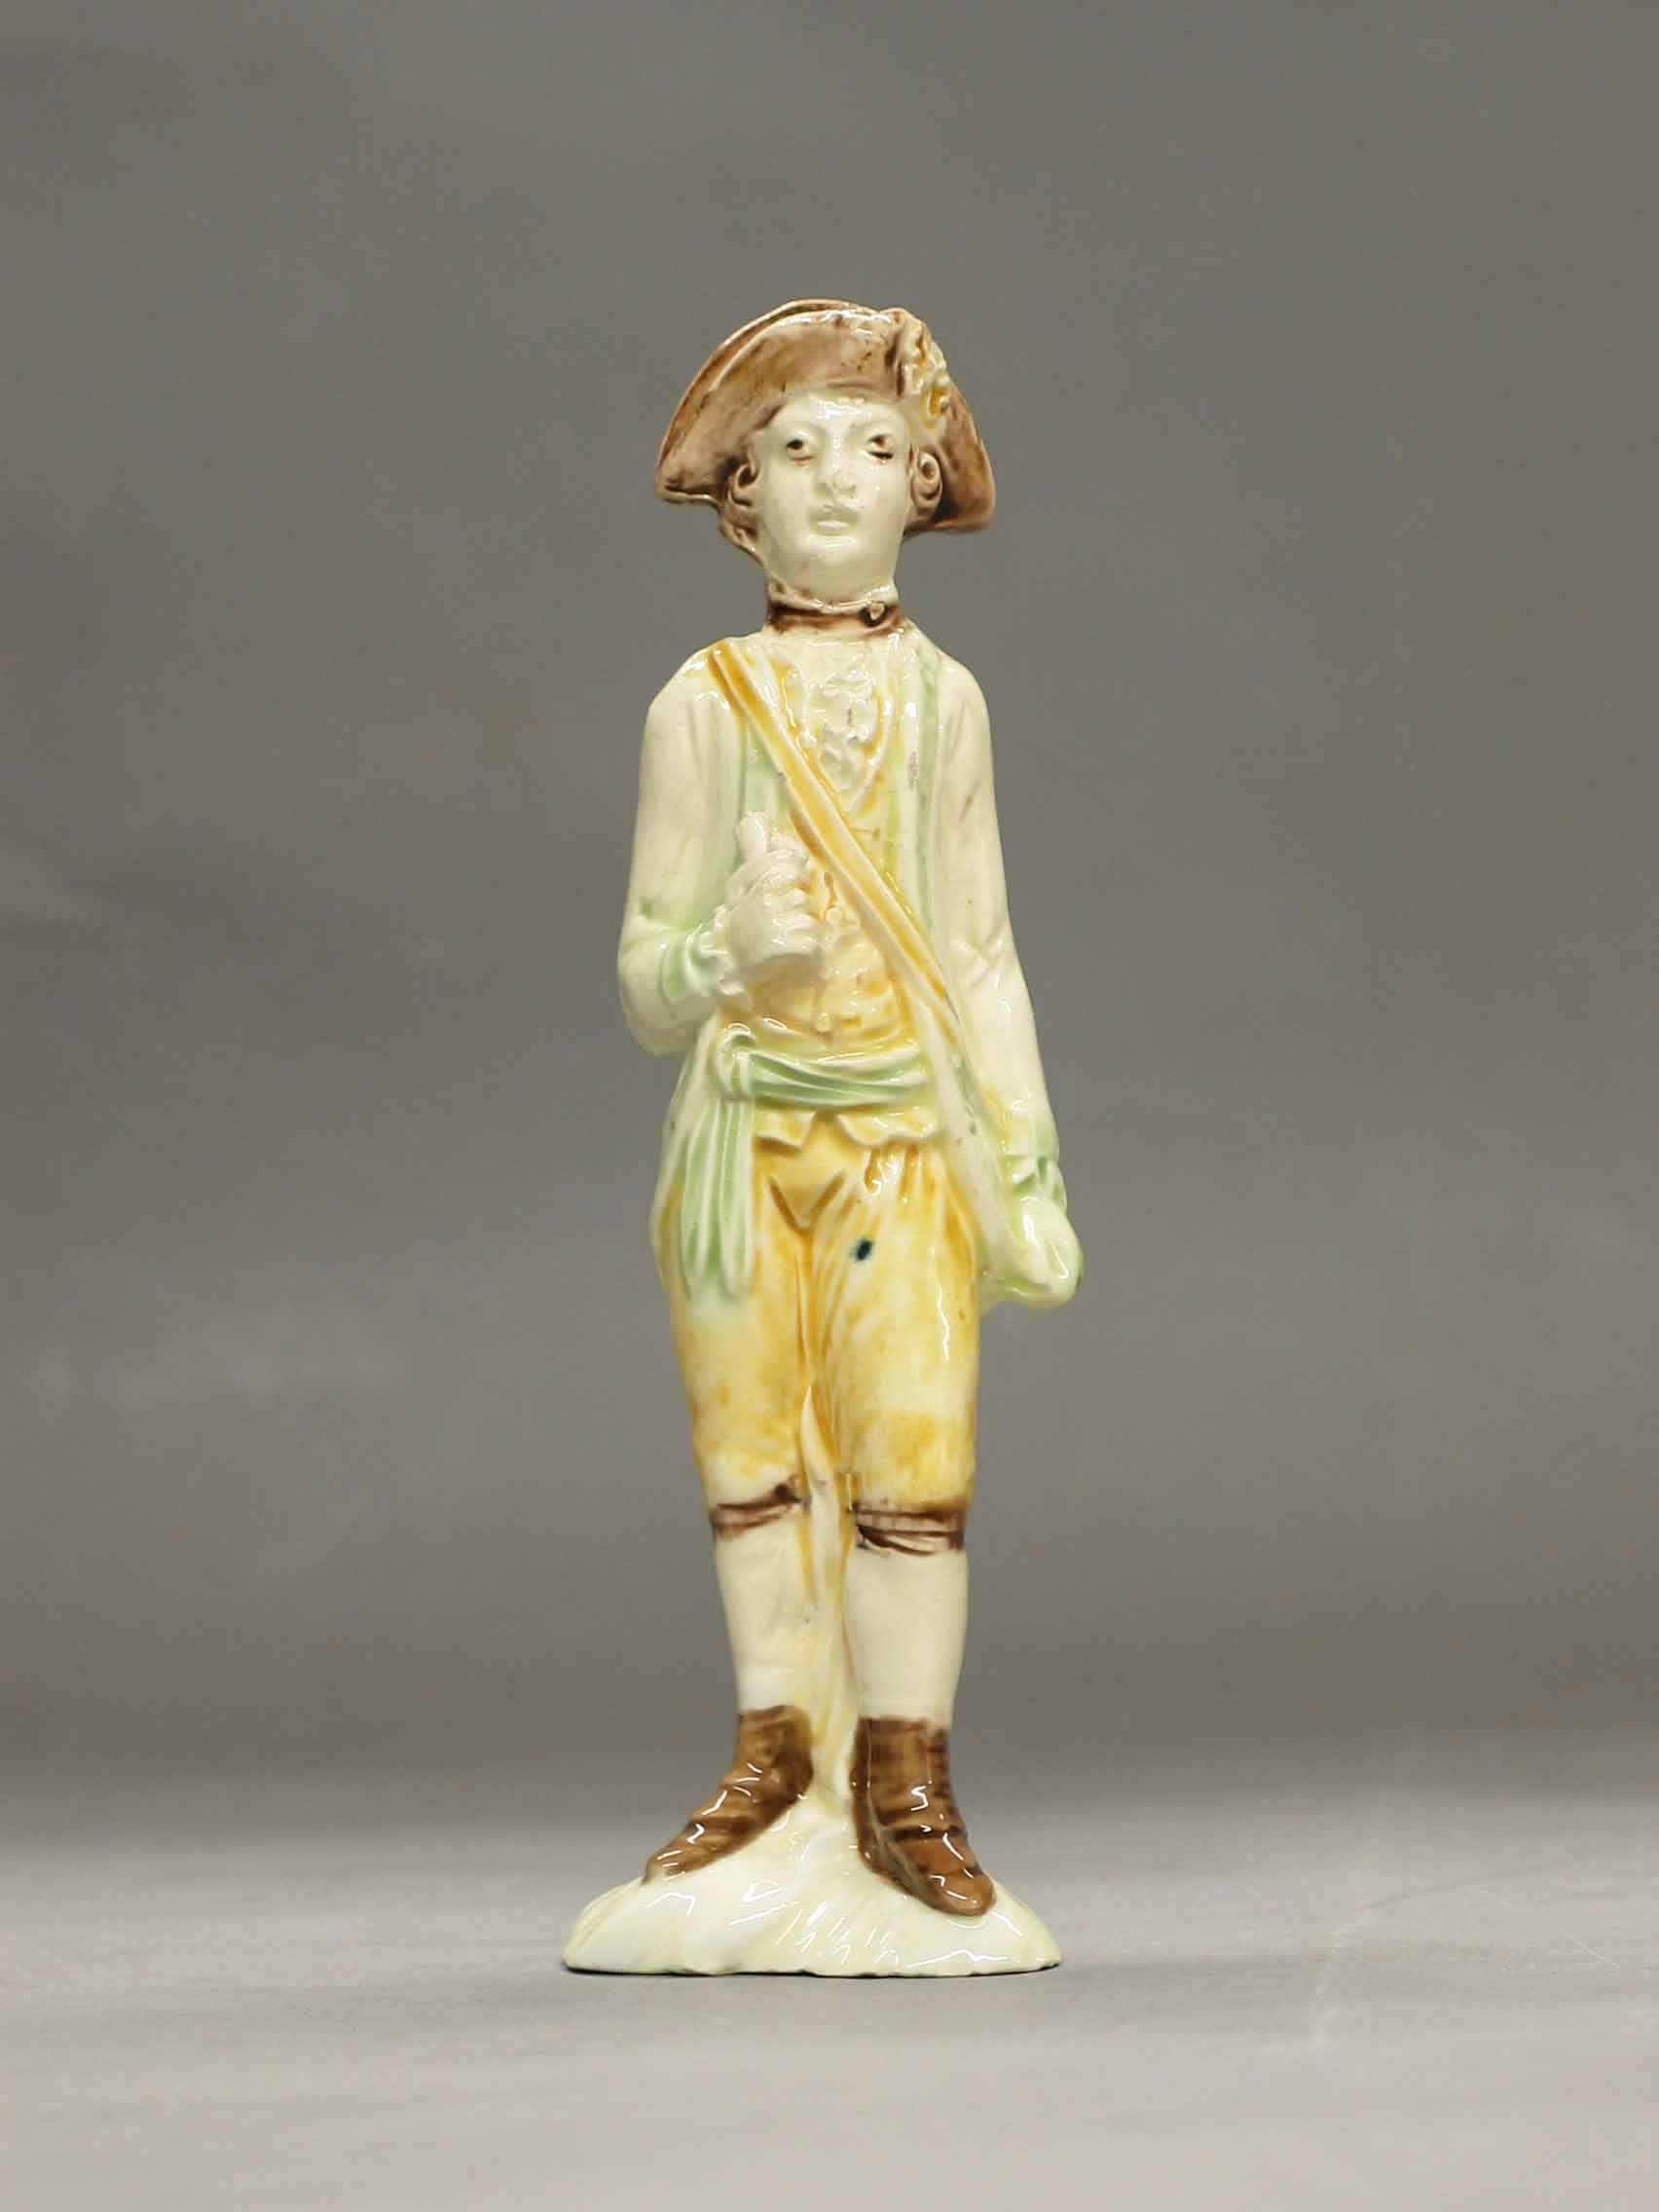 Astbury-Whieldon Figure of a Messenger, ca. 1745